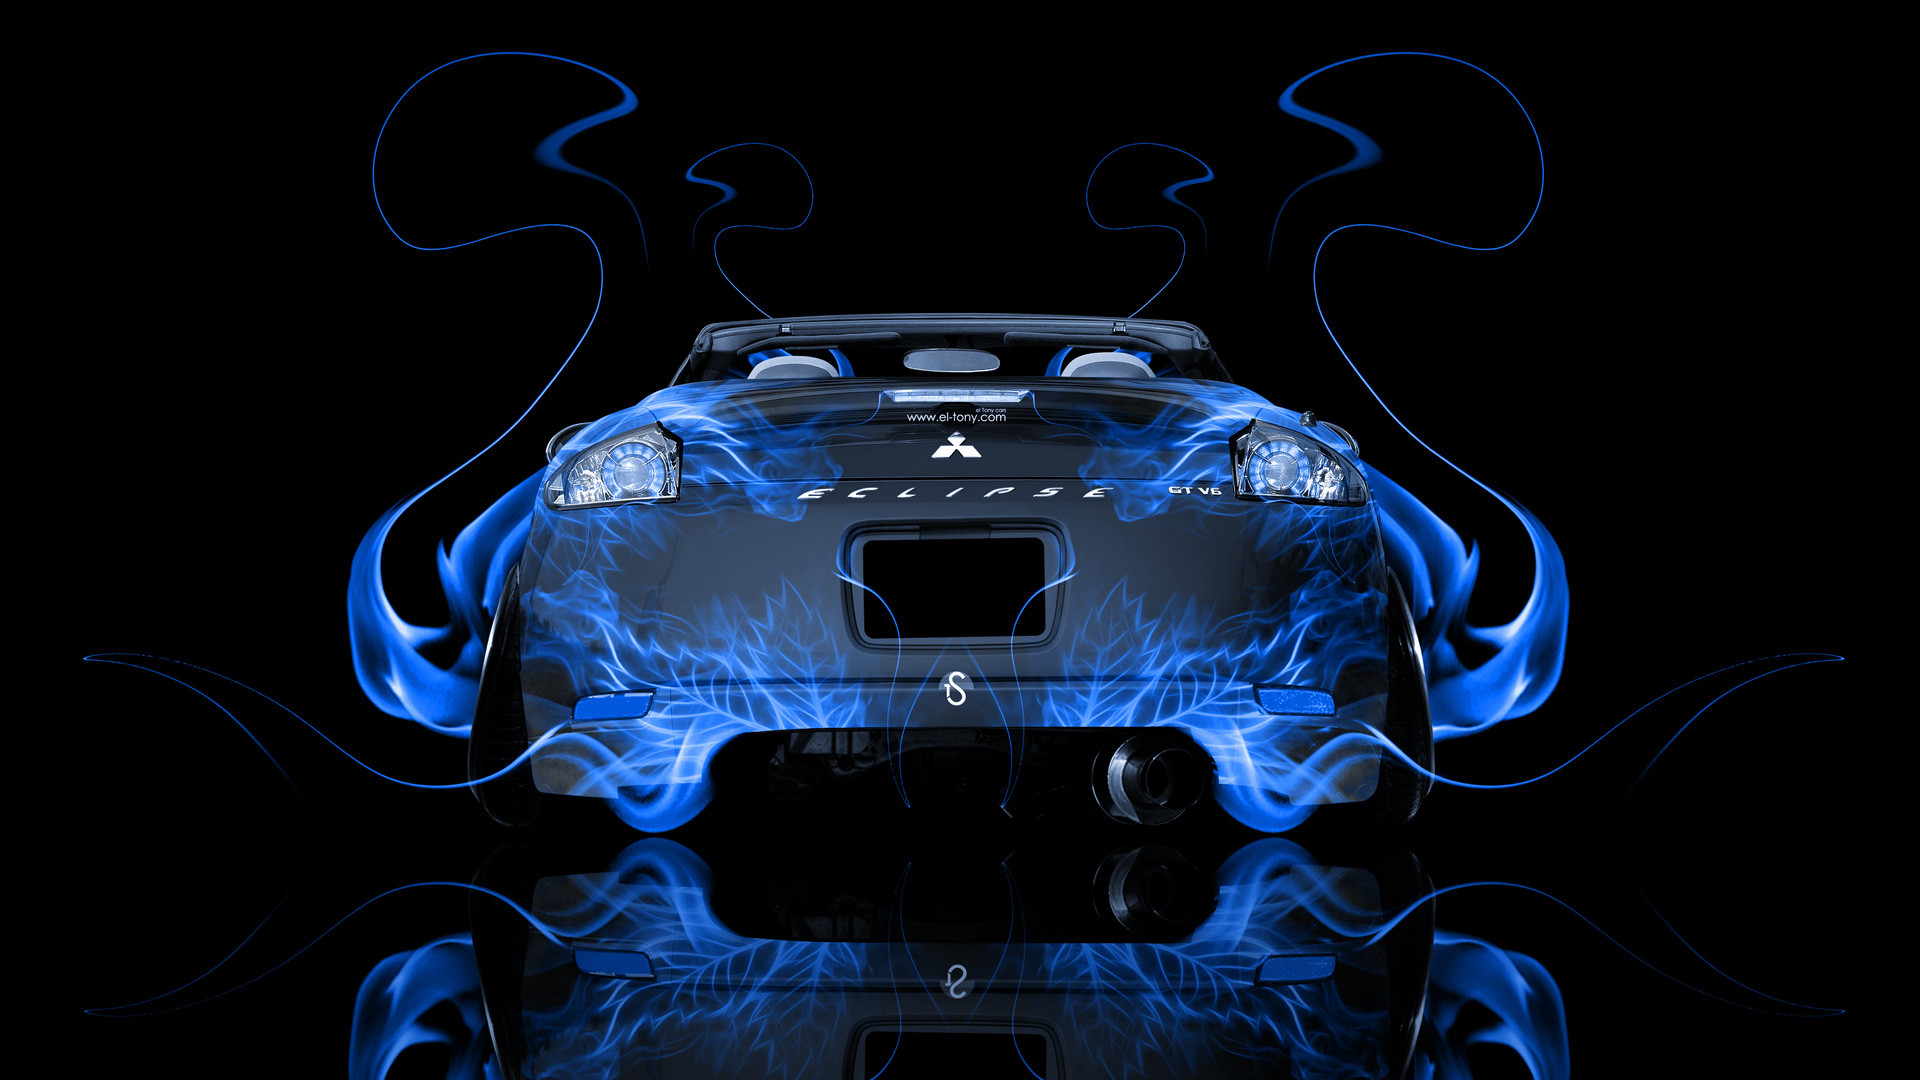 Mitsubishi Eclipse Abstract Blue Smoke Rims 2013 HD Source · Mitsubishi  Logo Wallpapers